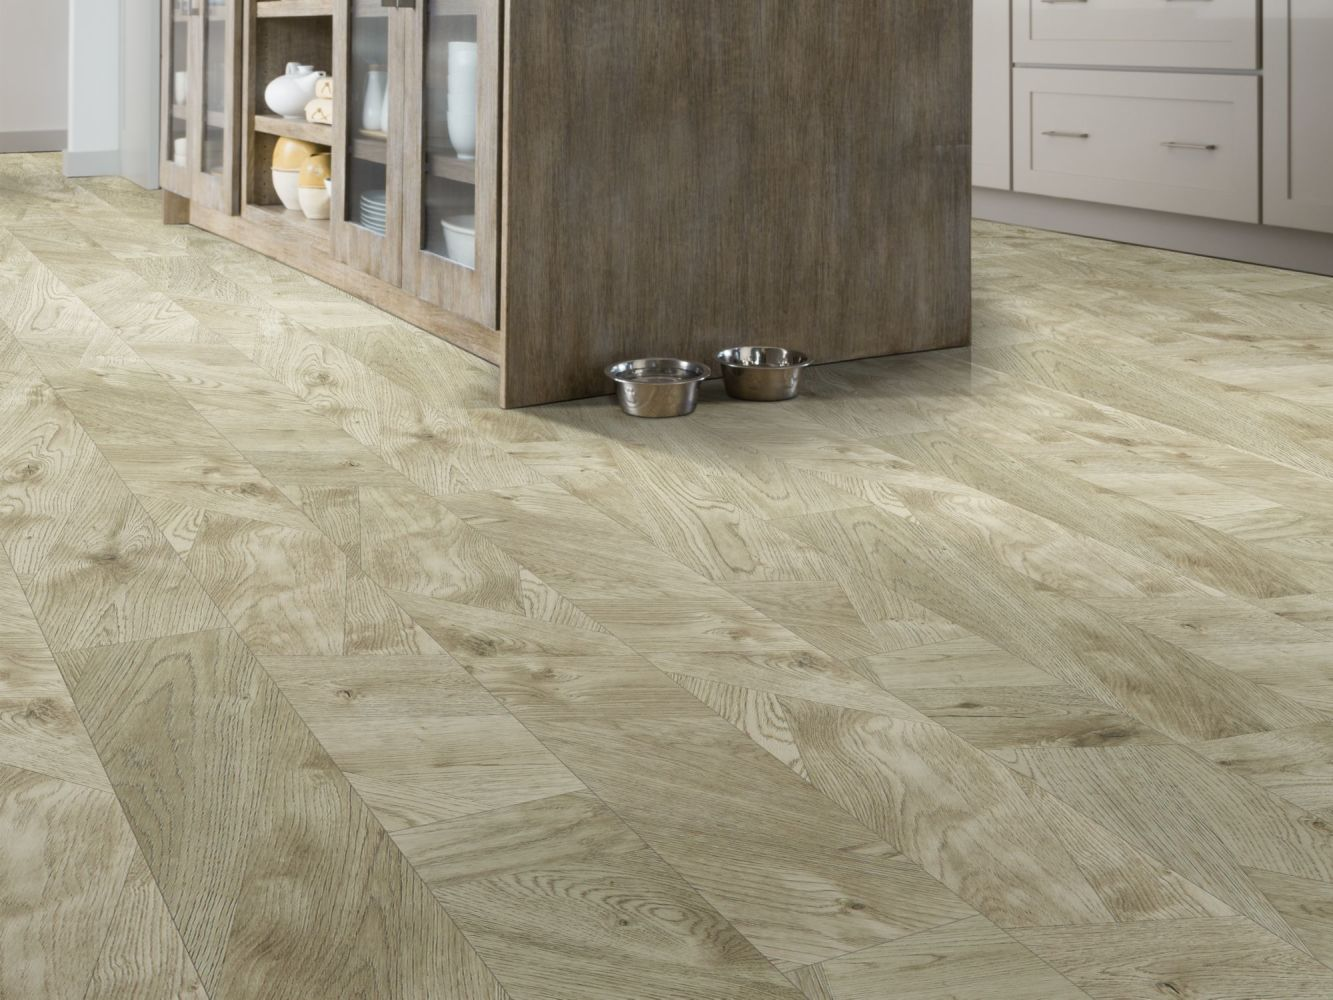 Shaw Floors SFA Adventure Hd+ Milled Bazaar Spice 02011_702SA